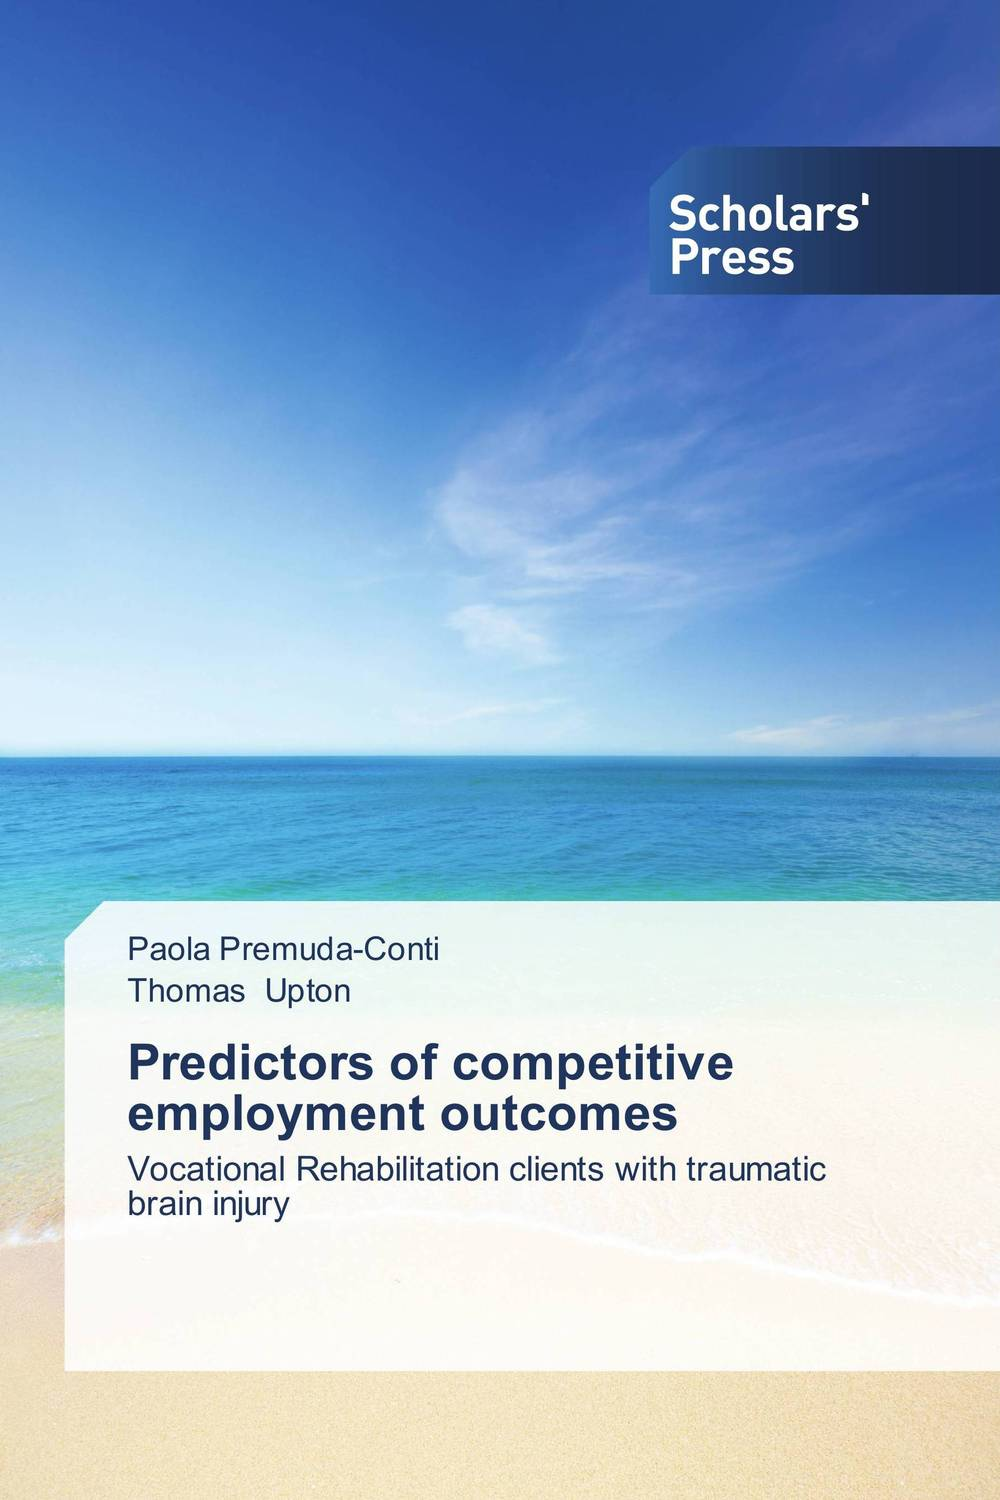 Predictors of competitive employment outcomes hira dhar chudali md hasrat ali and anju choudhury topographical implication on income and employment of nepalese people